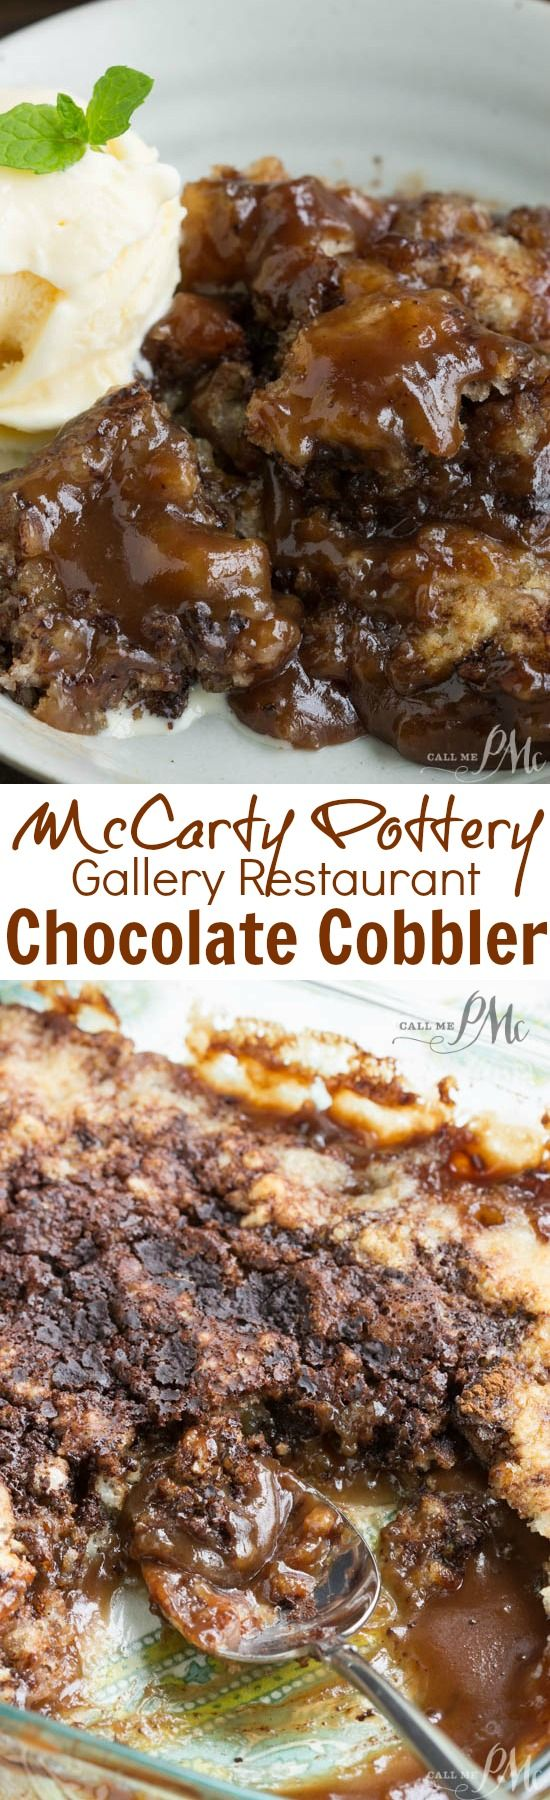 McCarty's Gallery Restaurant Chocolate Cobbler is has a buttery, tender crust and a melt-in-your-mouth chocolate sauce. This is a simple layered dessert that's easy as 1 2 3. (easy dessert in a cup)